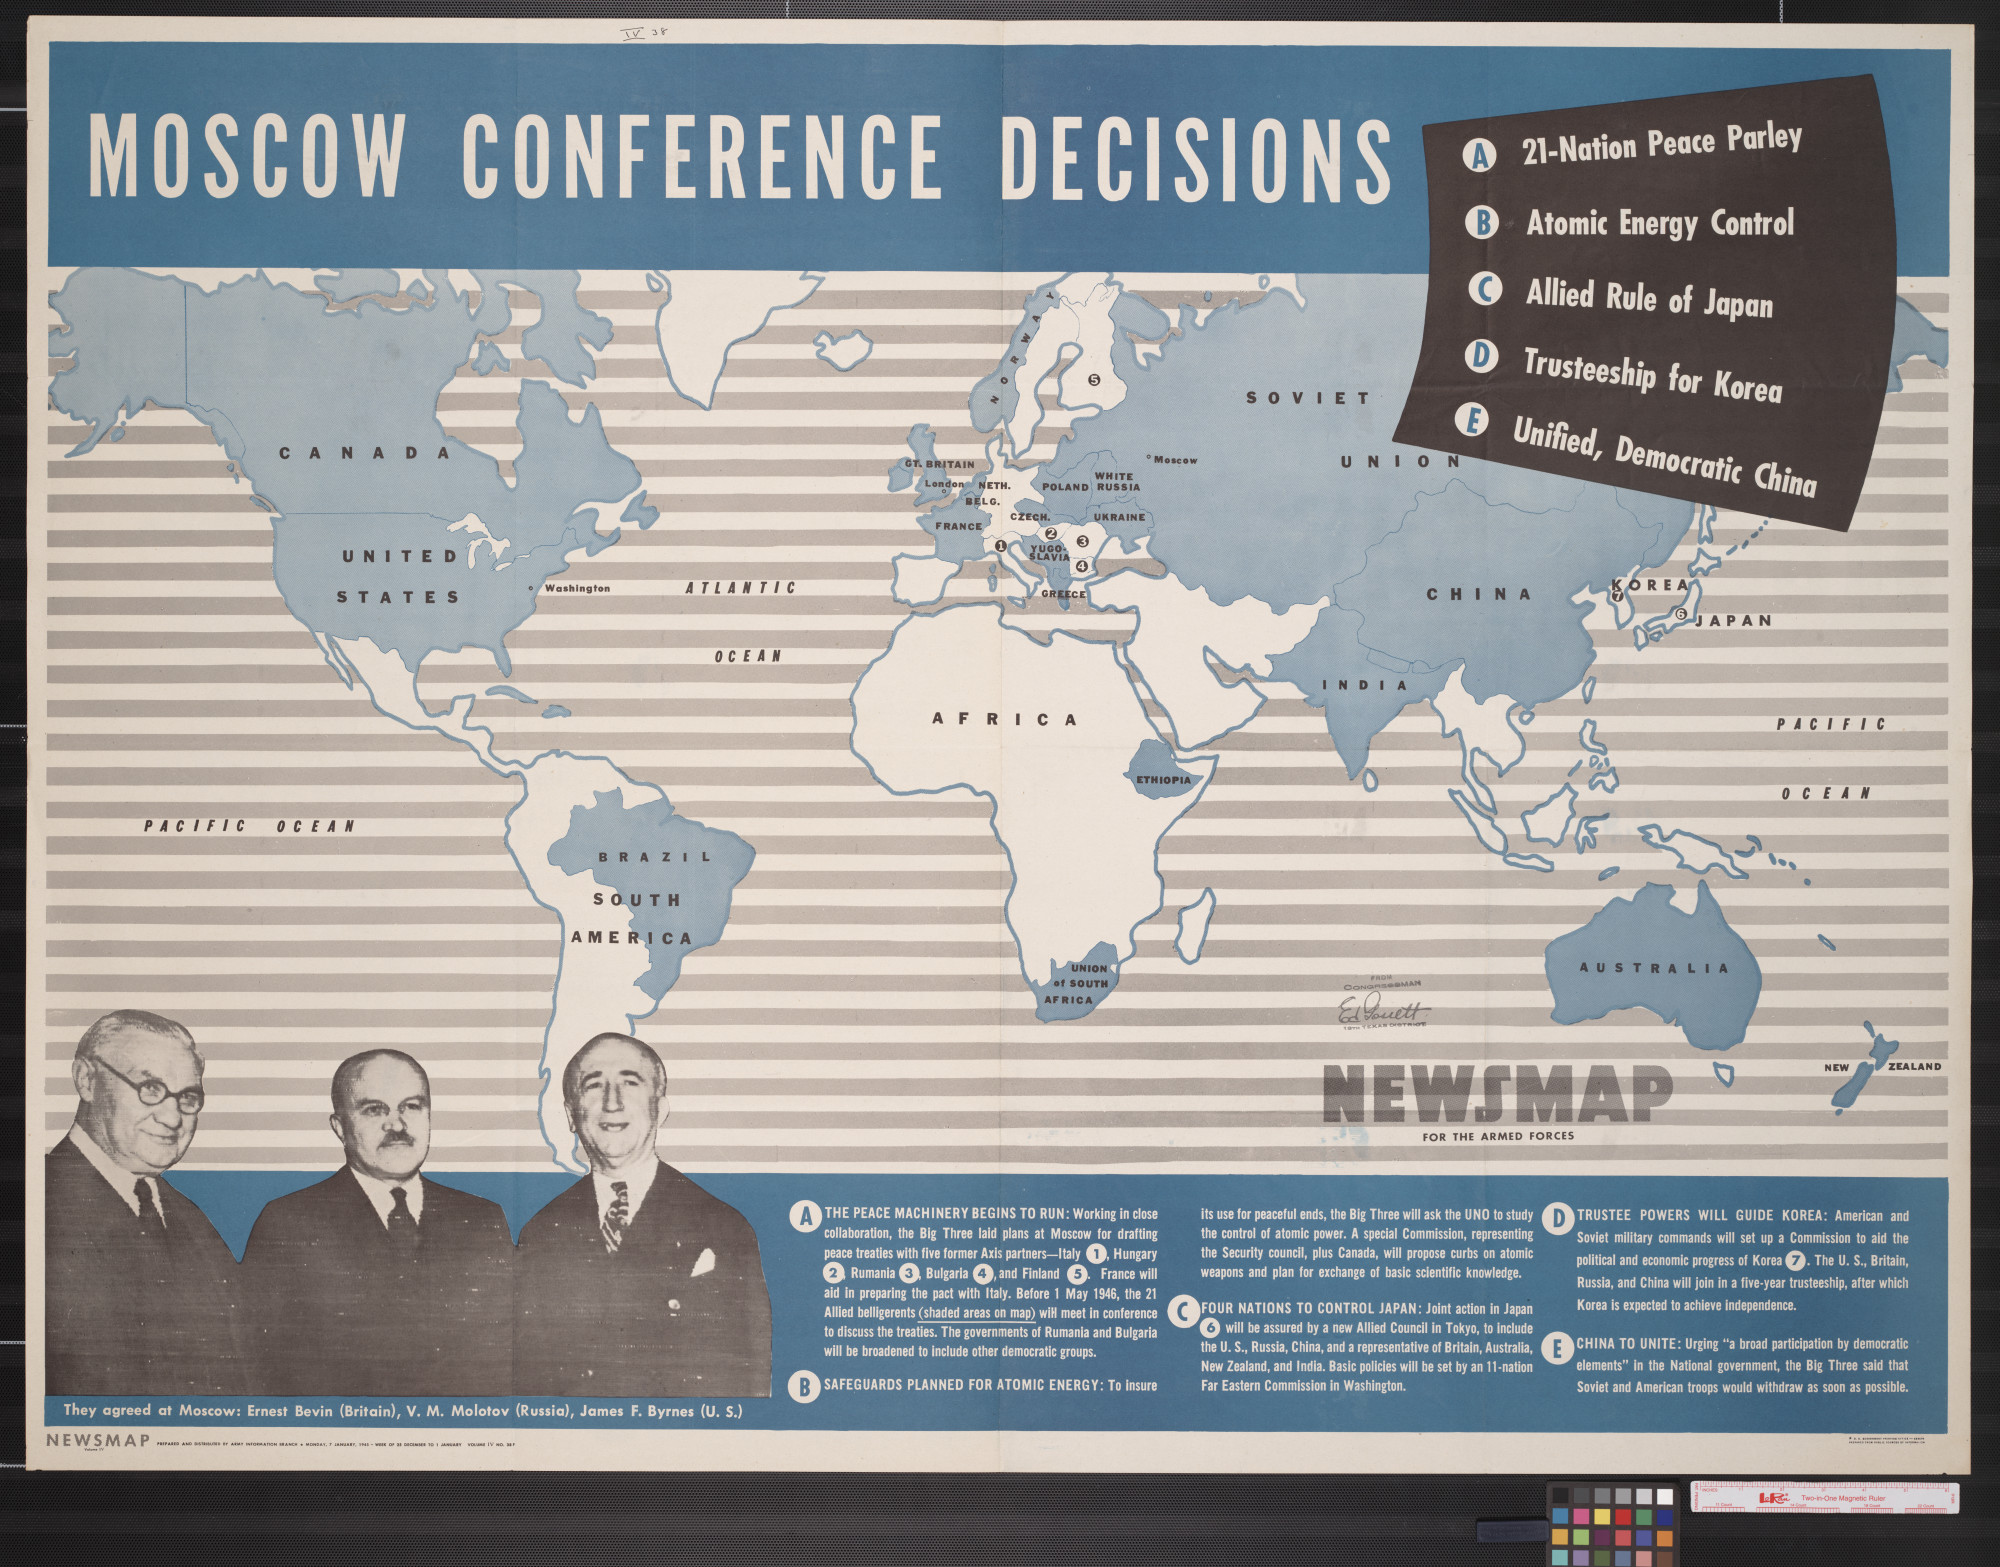 Newsmap for the Armed Forces : Moscow conference decisions                                                                                                      [Sequence #]: 1 of 2